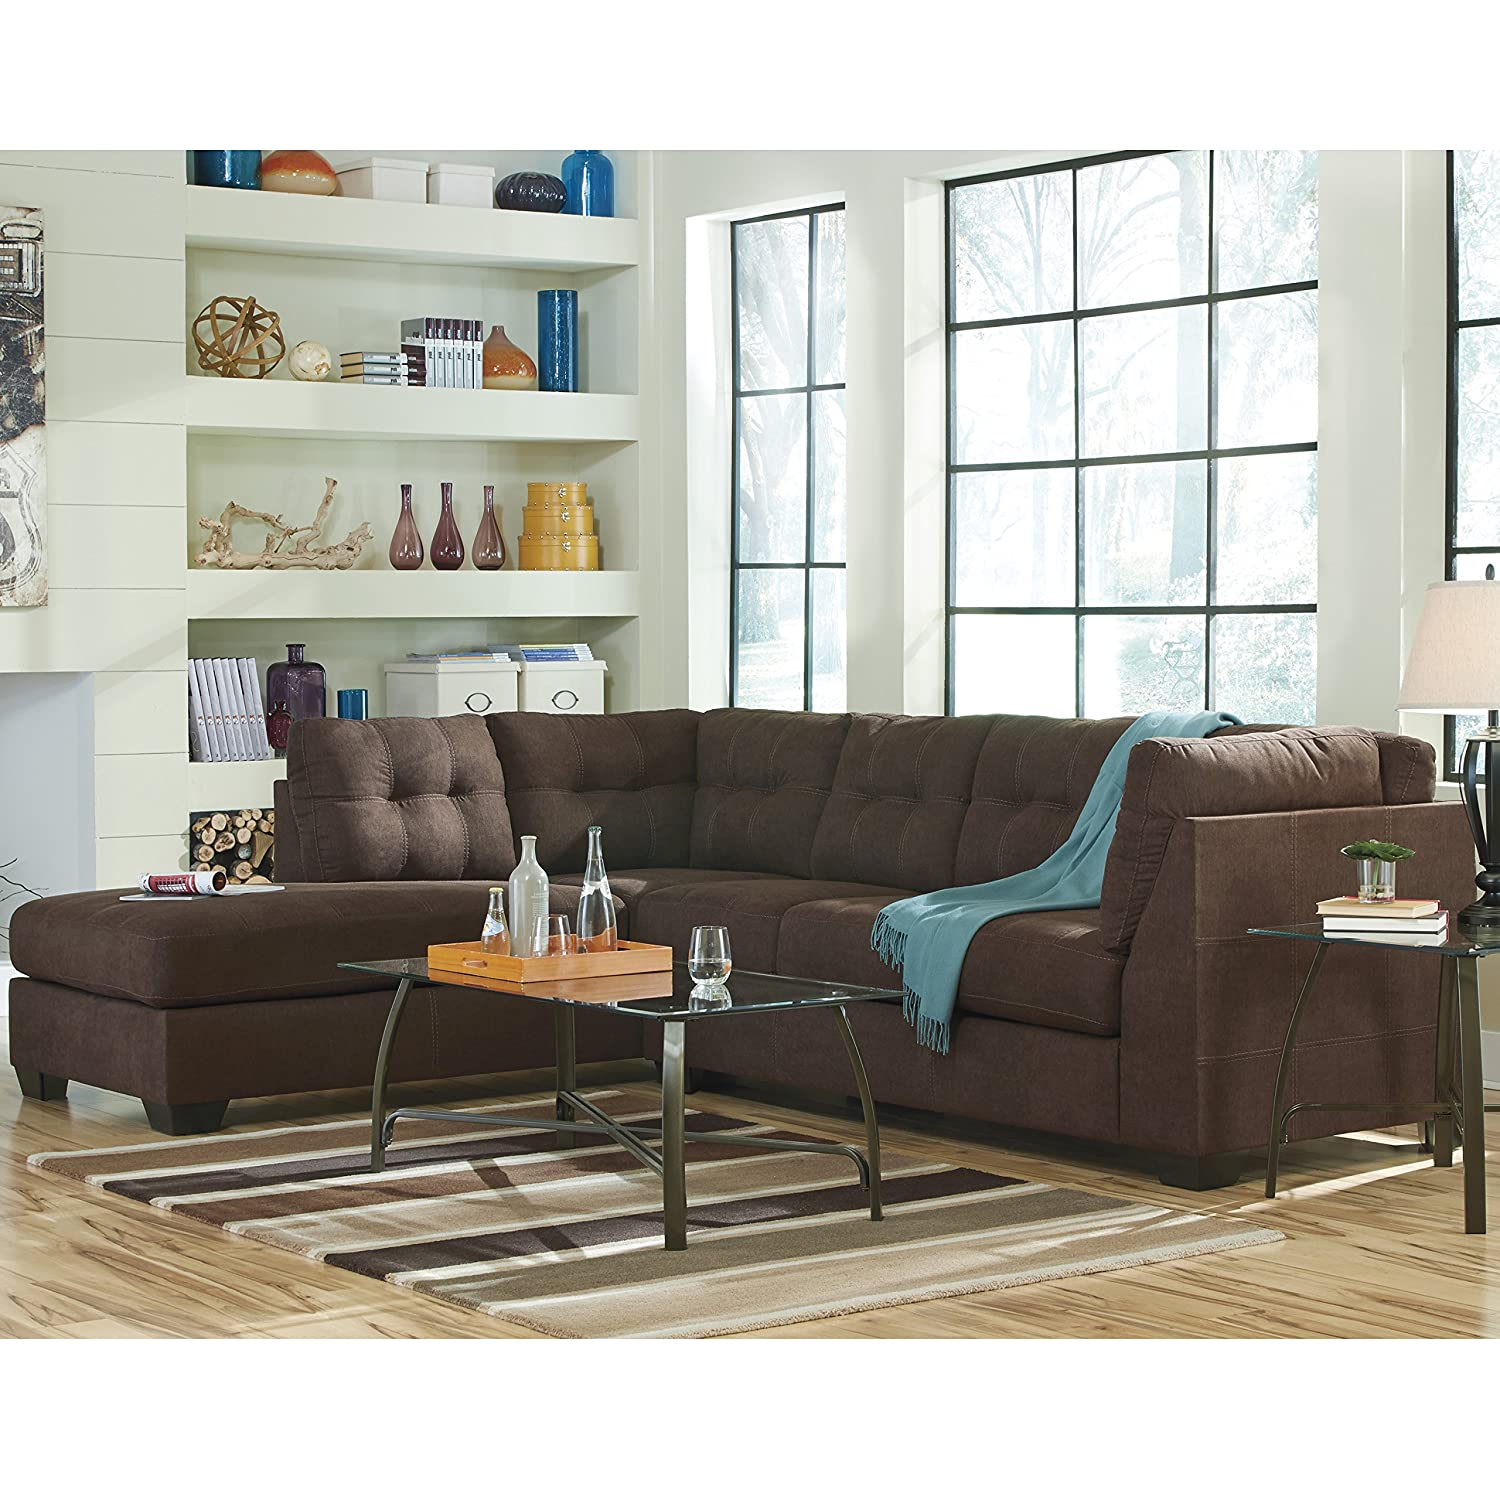 Amazon com flash furniture benchcraft maier sectional with left side facing chaise in walnut microfiber kitchen dining